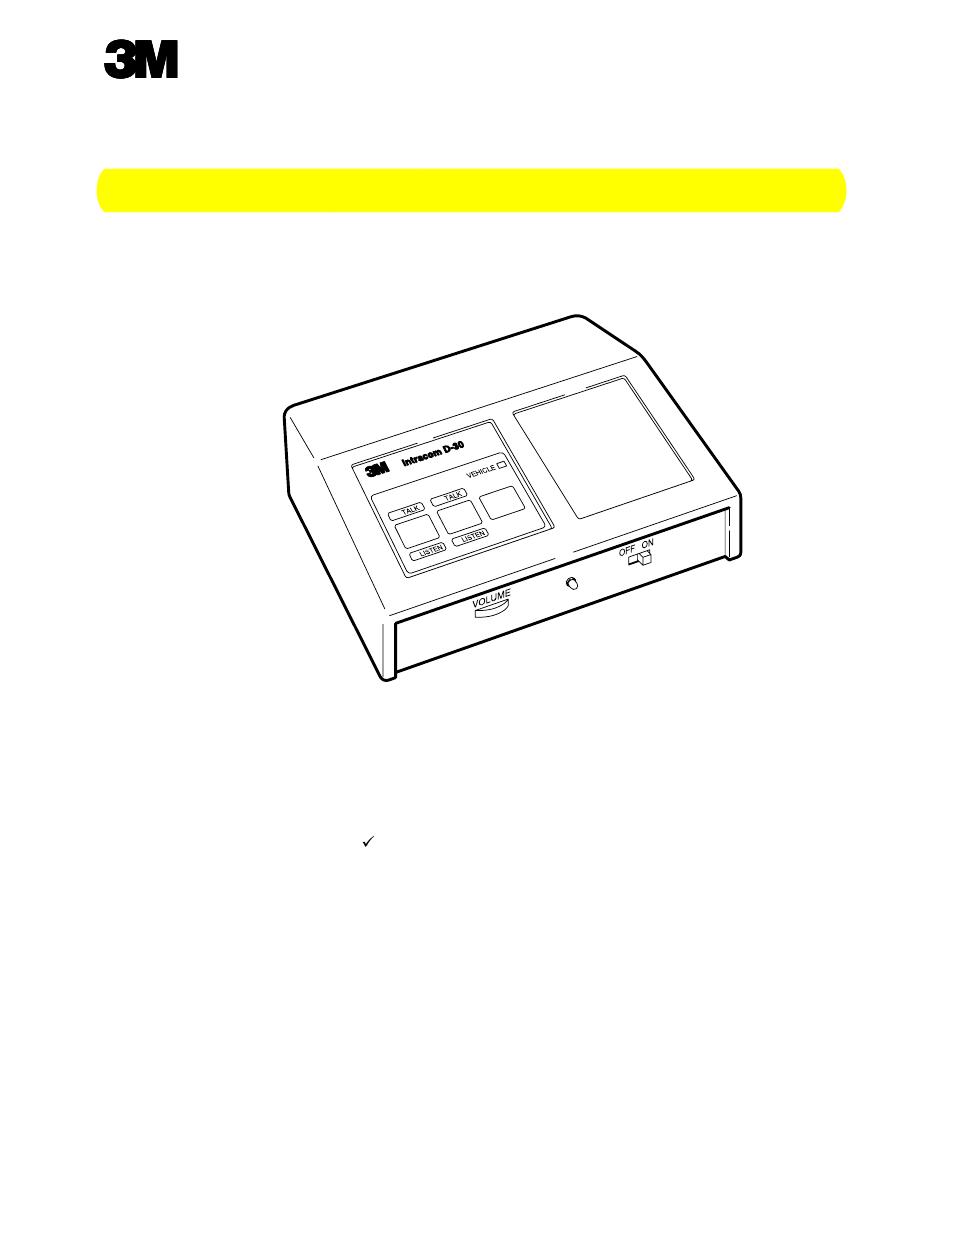 3m Intercom D2475aa Wiring Diagram Electrical Diagrams For Trusted Drive Thru Systems